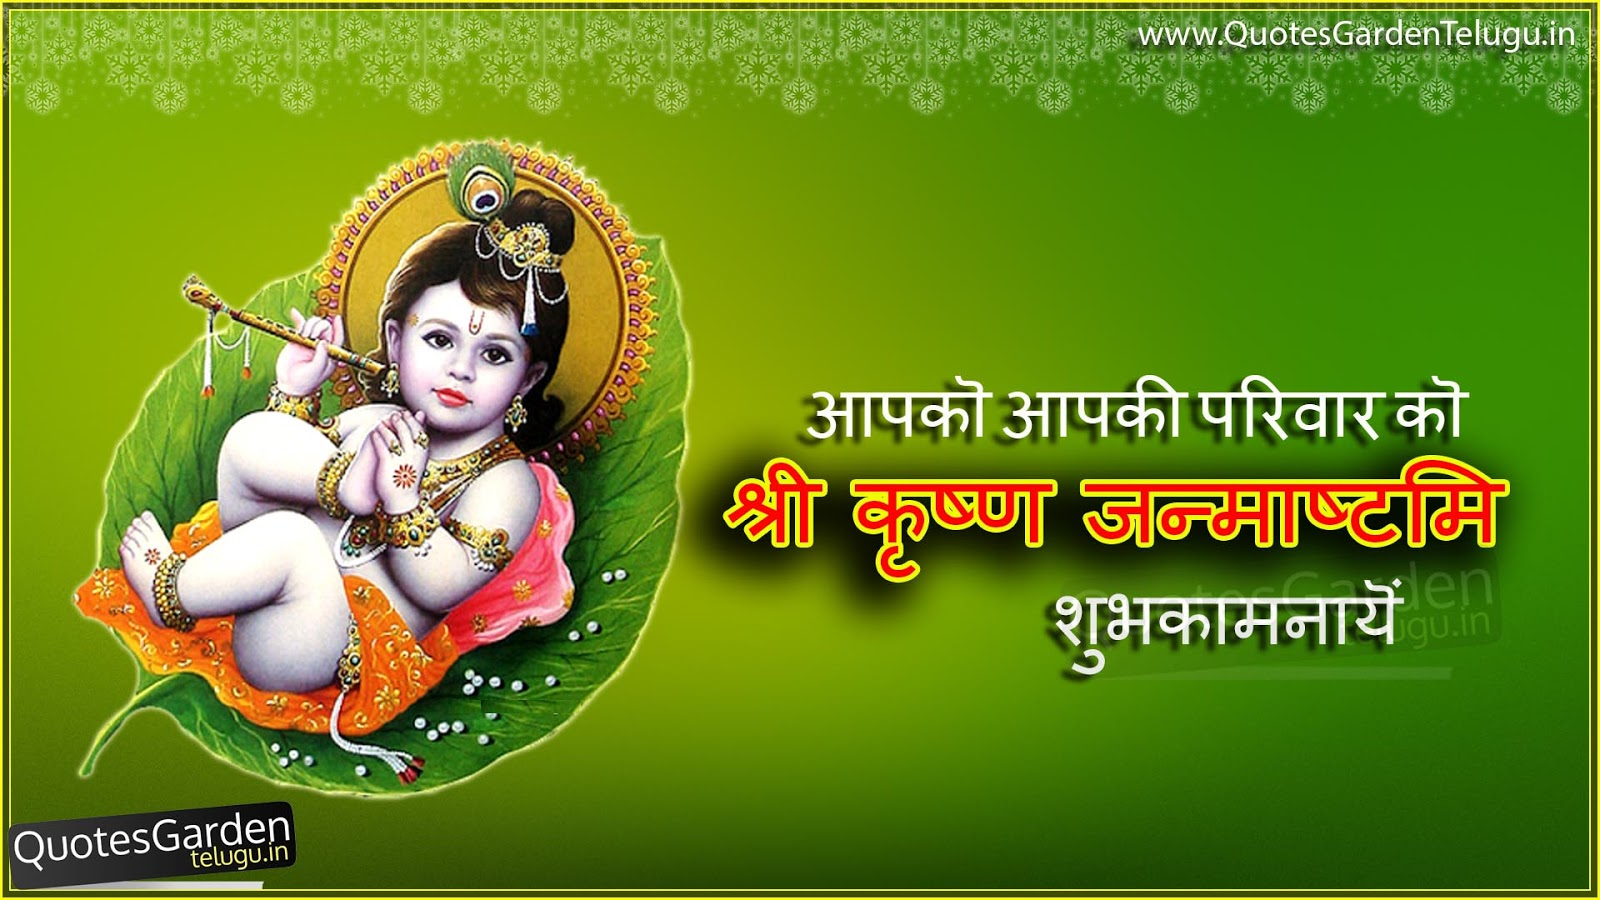 essay on janmashtami in english Short essay on krishna janmashtami in english, franklin d roosevelt essay, essay on my ambition in life to become a pilot, essay demonstrating leadership skills.